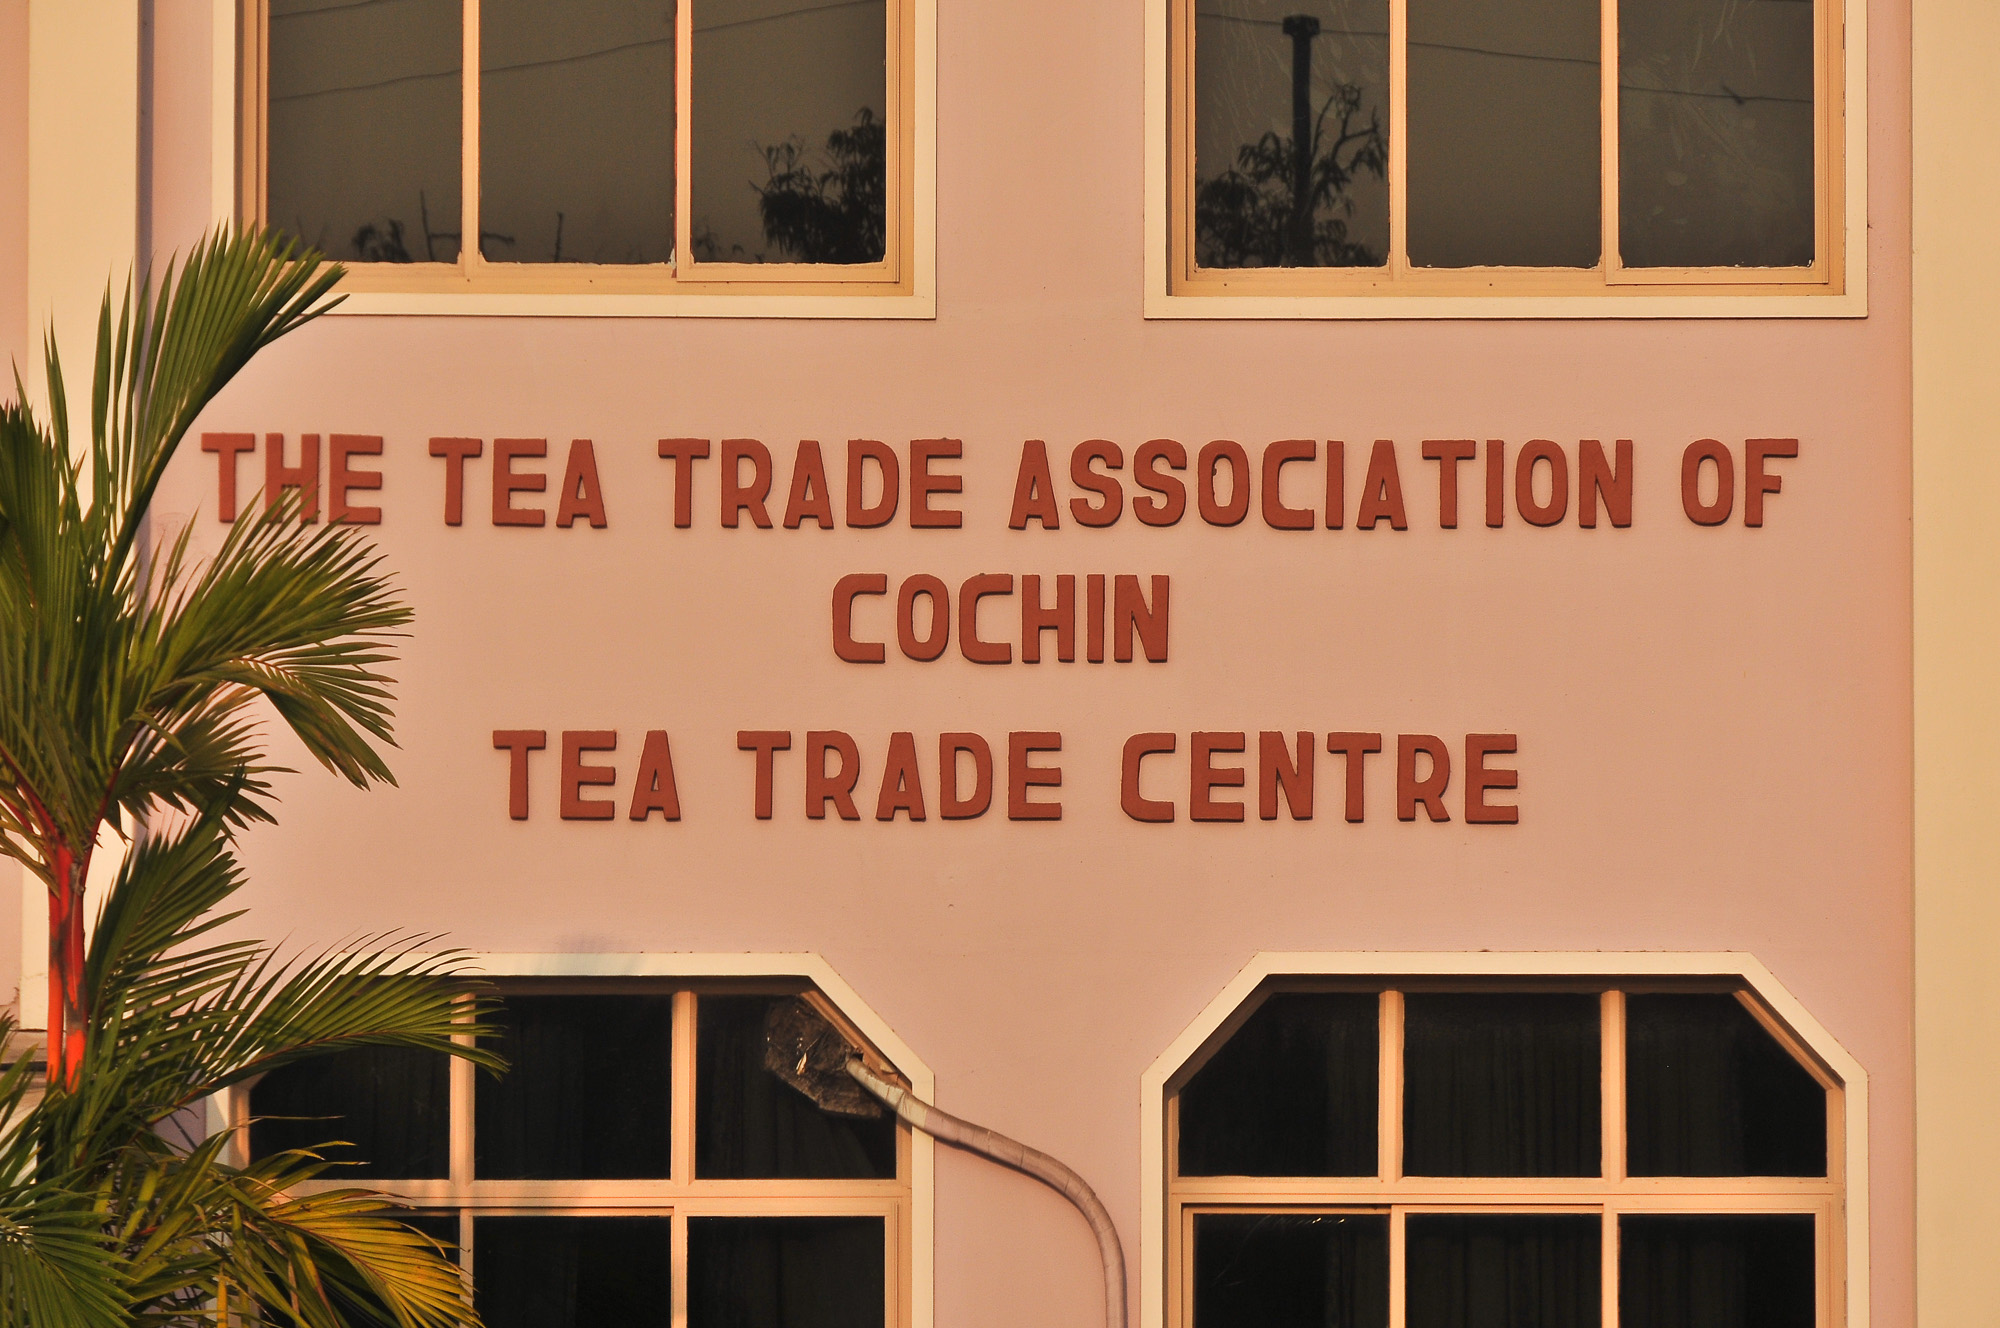 The Tea Trade Association of Cochin